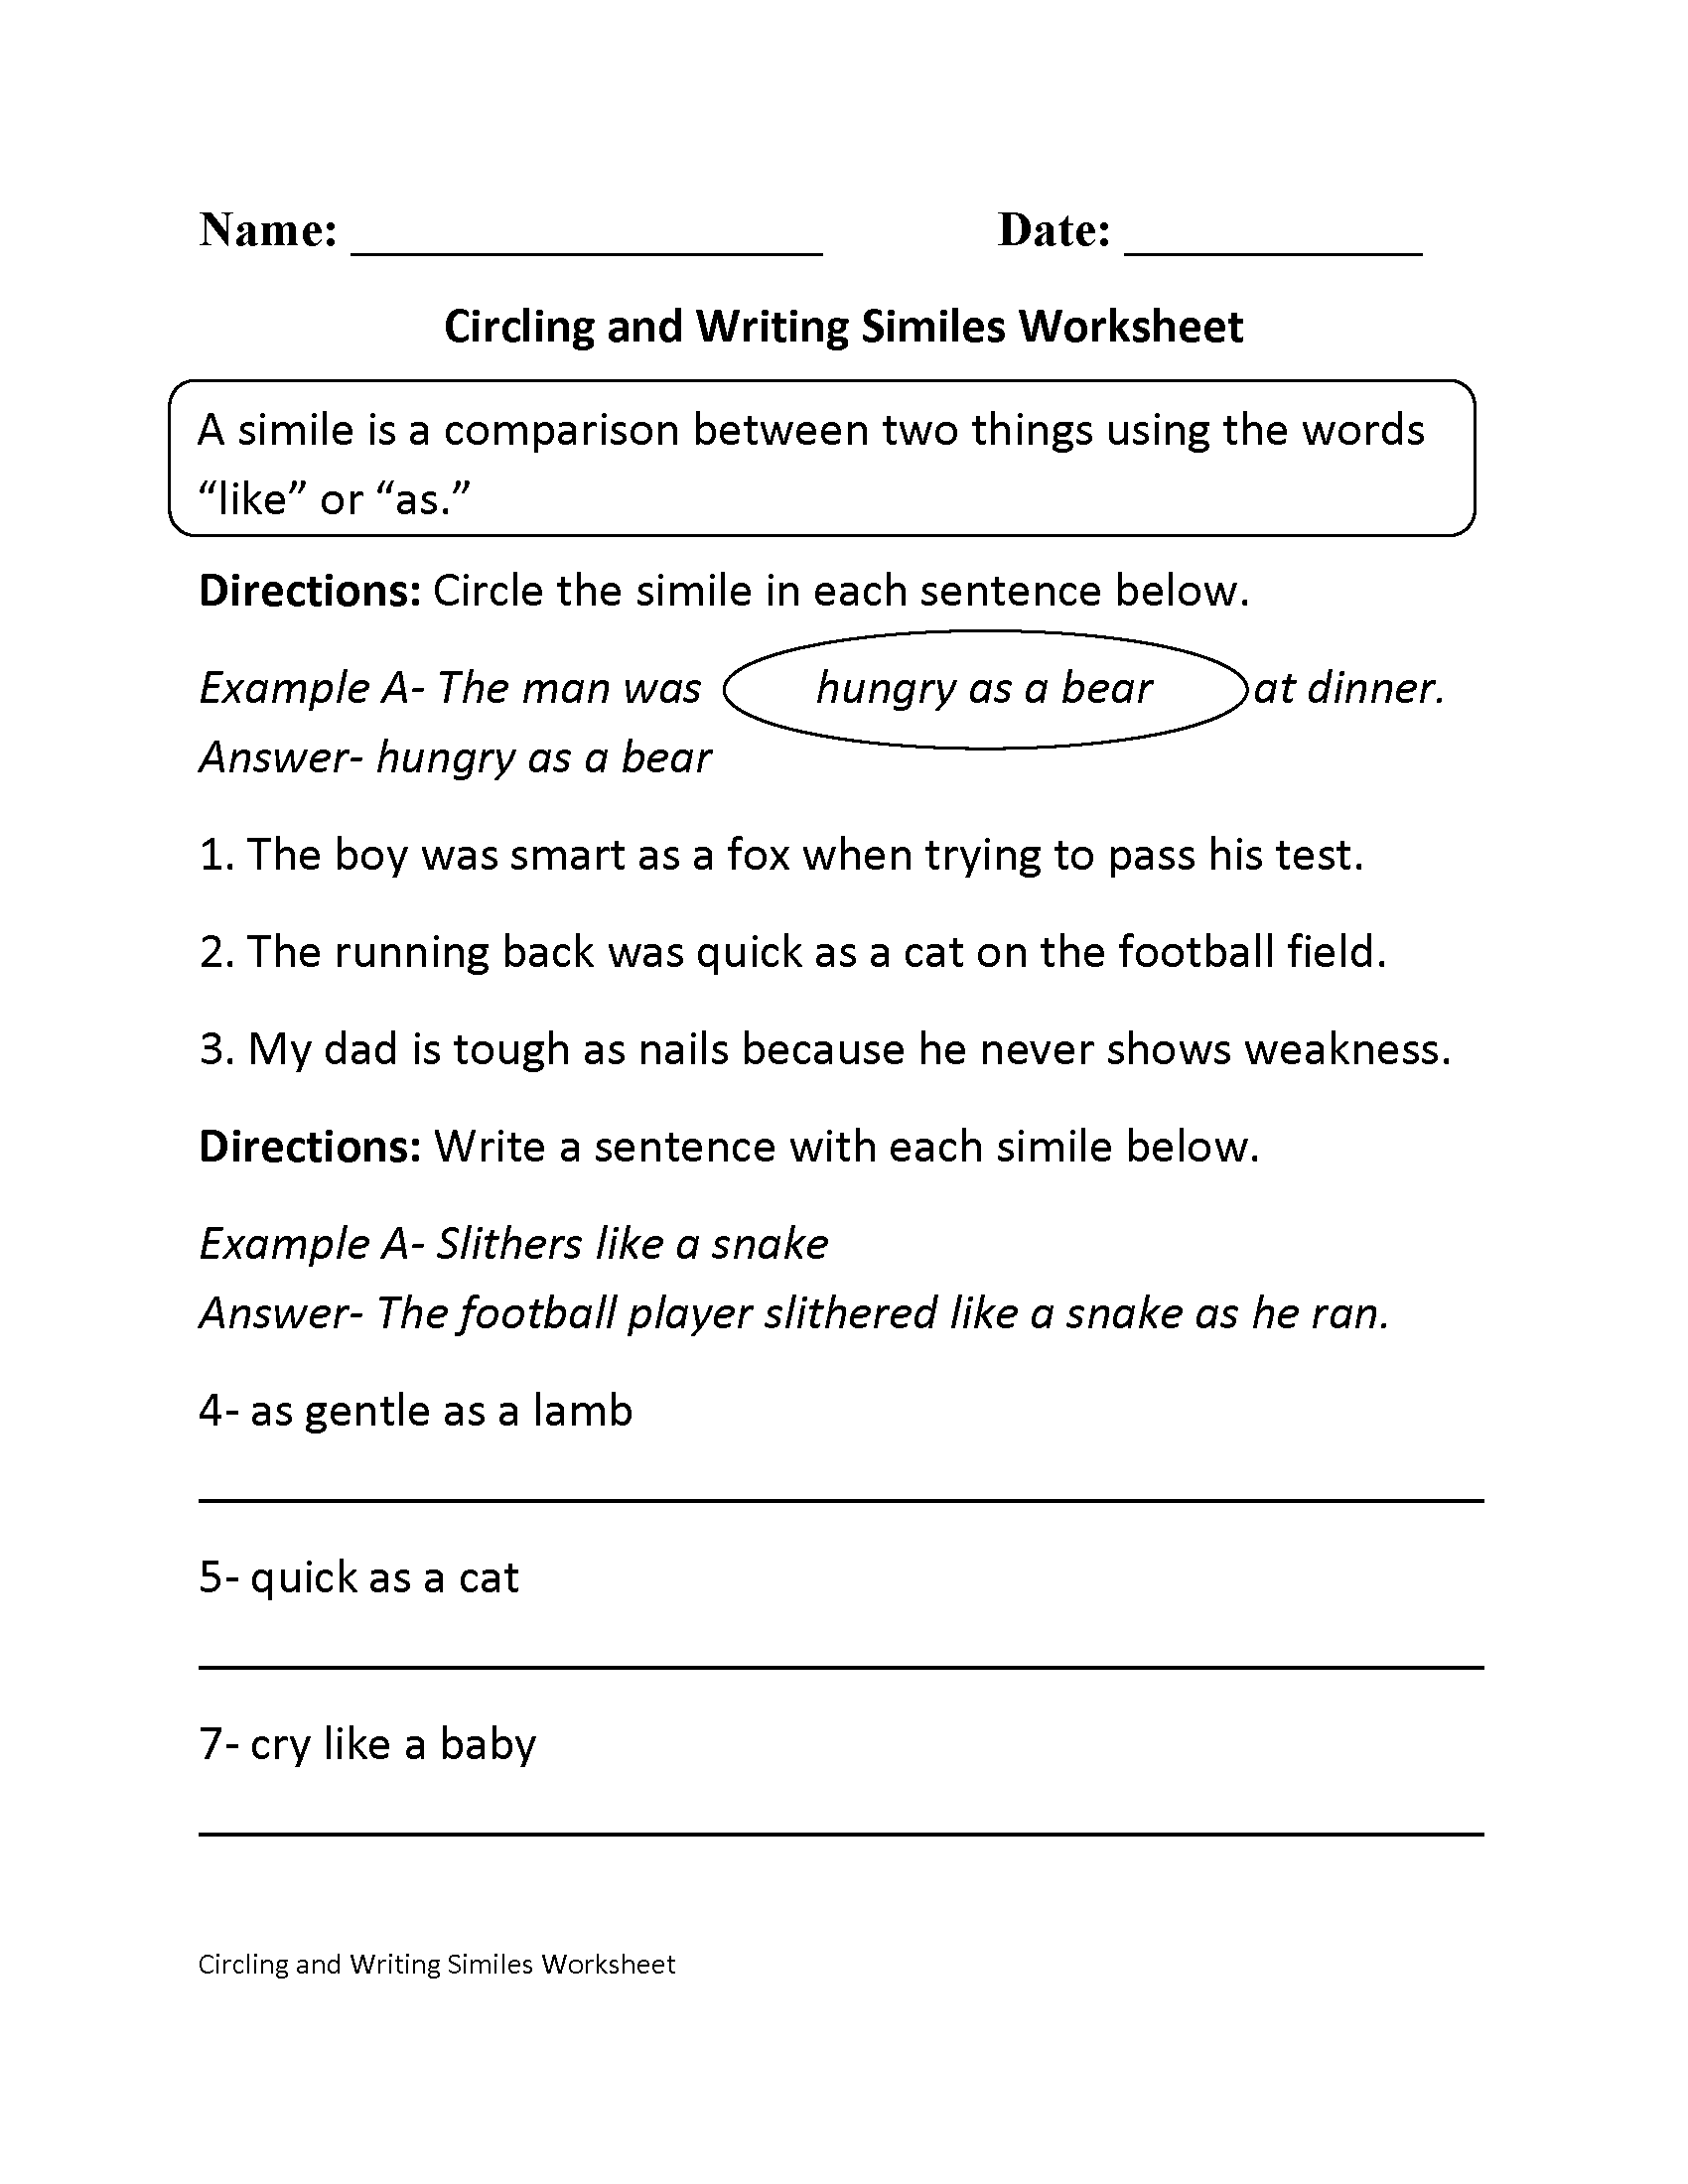 worksheet Similes And Metaphors Ks2 Worksheets englishlinx com similes worksheets worksheets